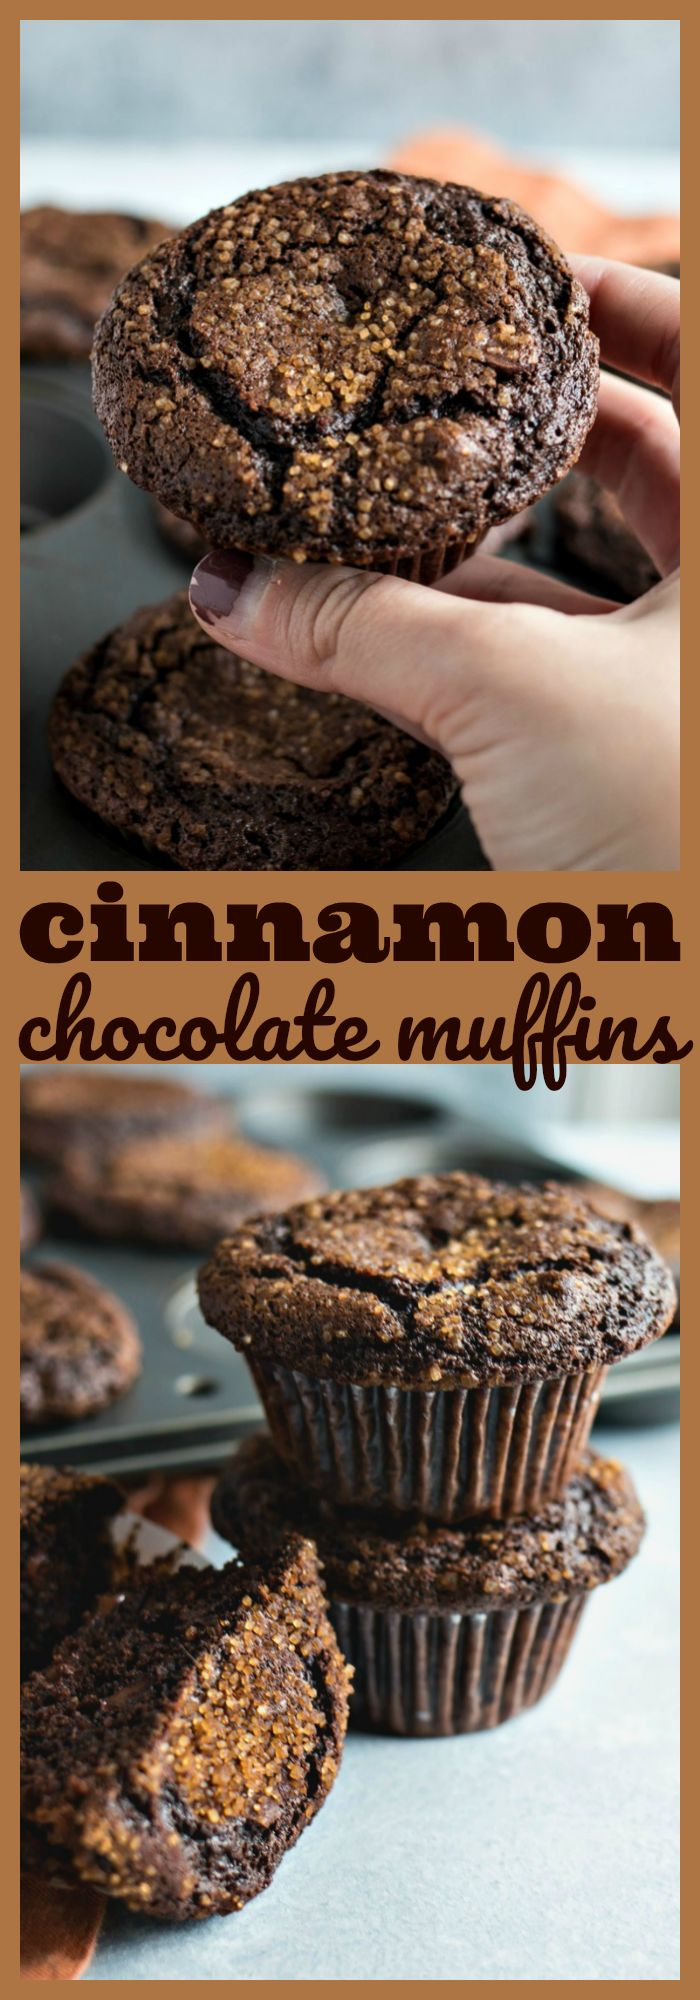 Cinnamon Chocolate Muffins – Chewy triple chocolate muffins are spiced with cinnamon and topped with cinnamon sugar for the perfect touch of crunch